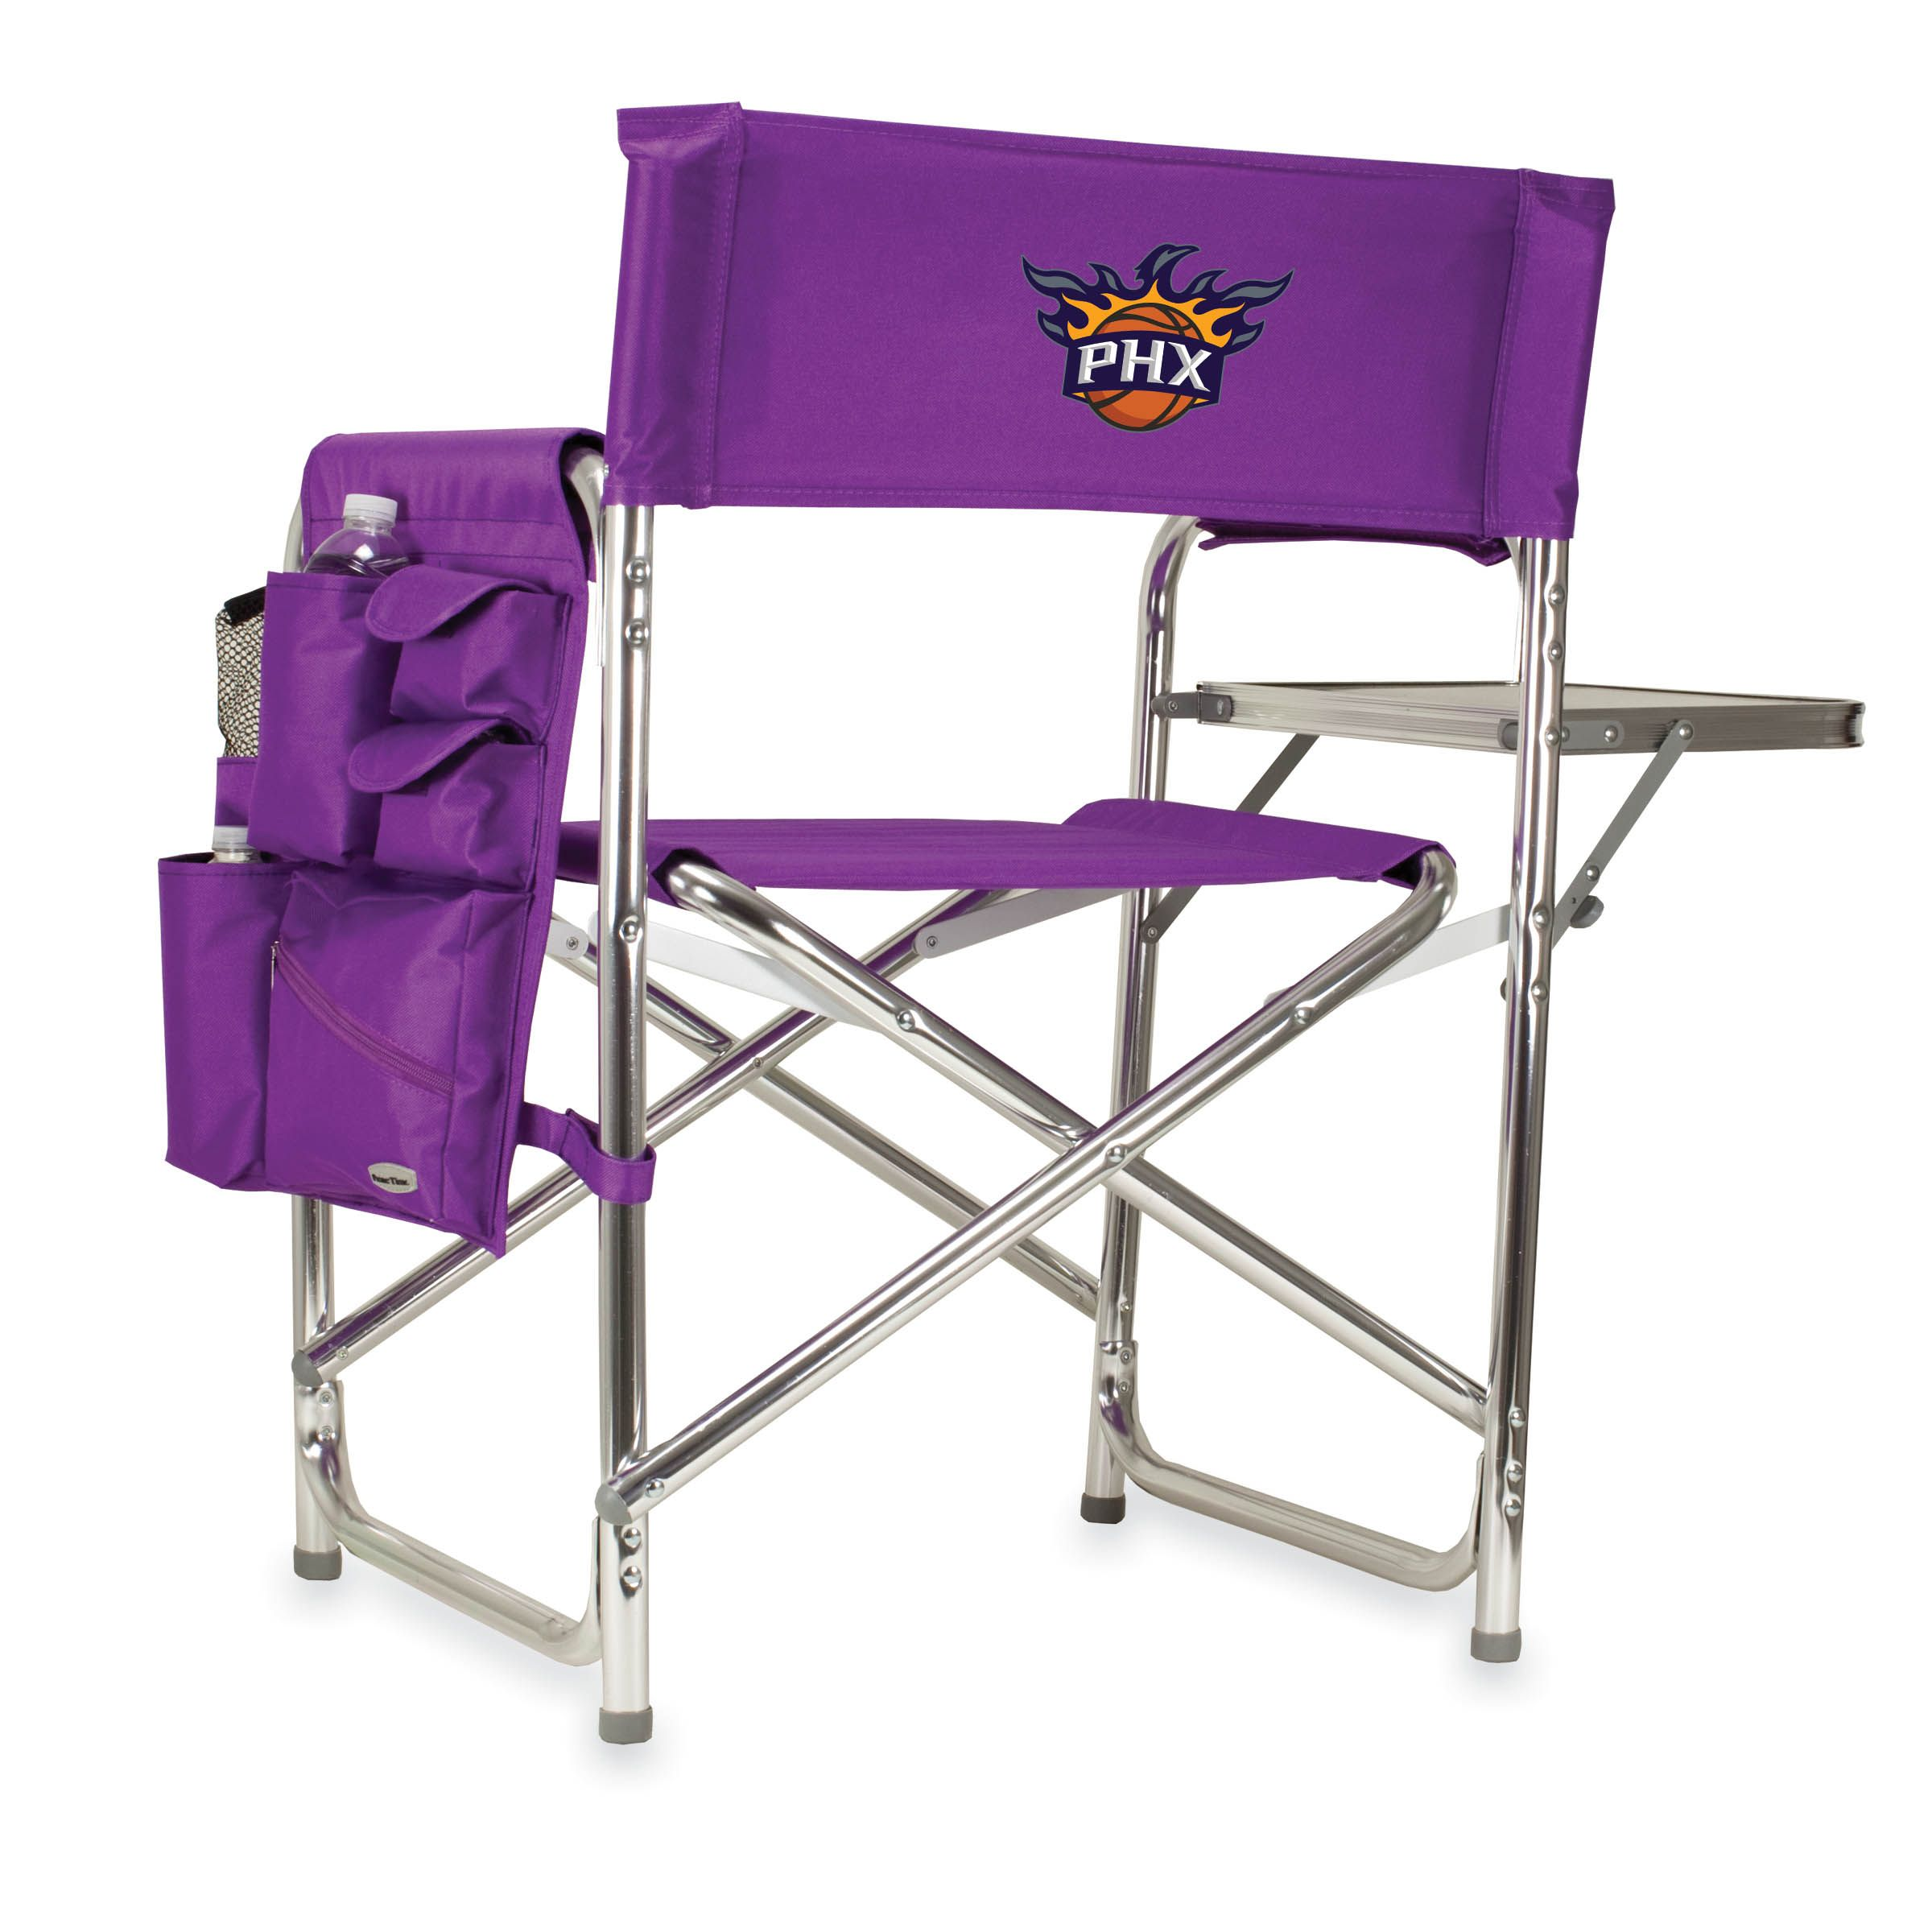 Picnic Time Nba Sports Chair Phoenix Suns